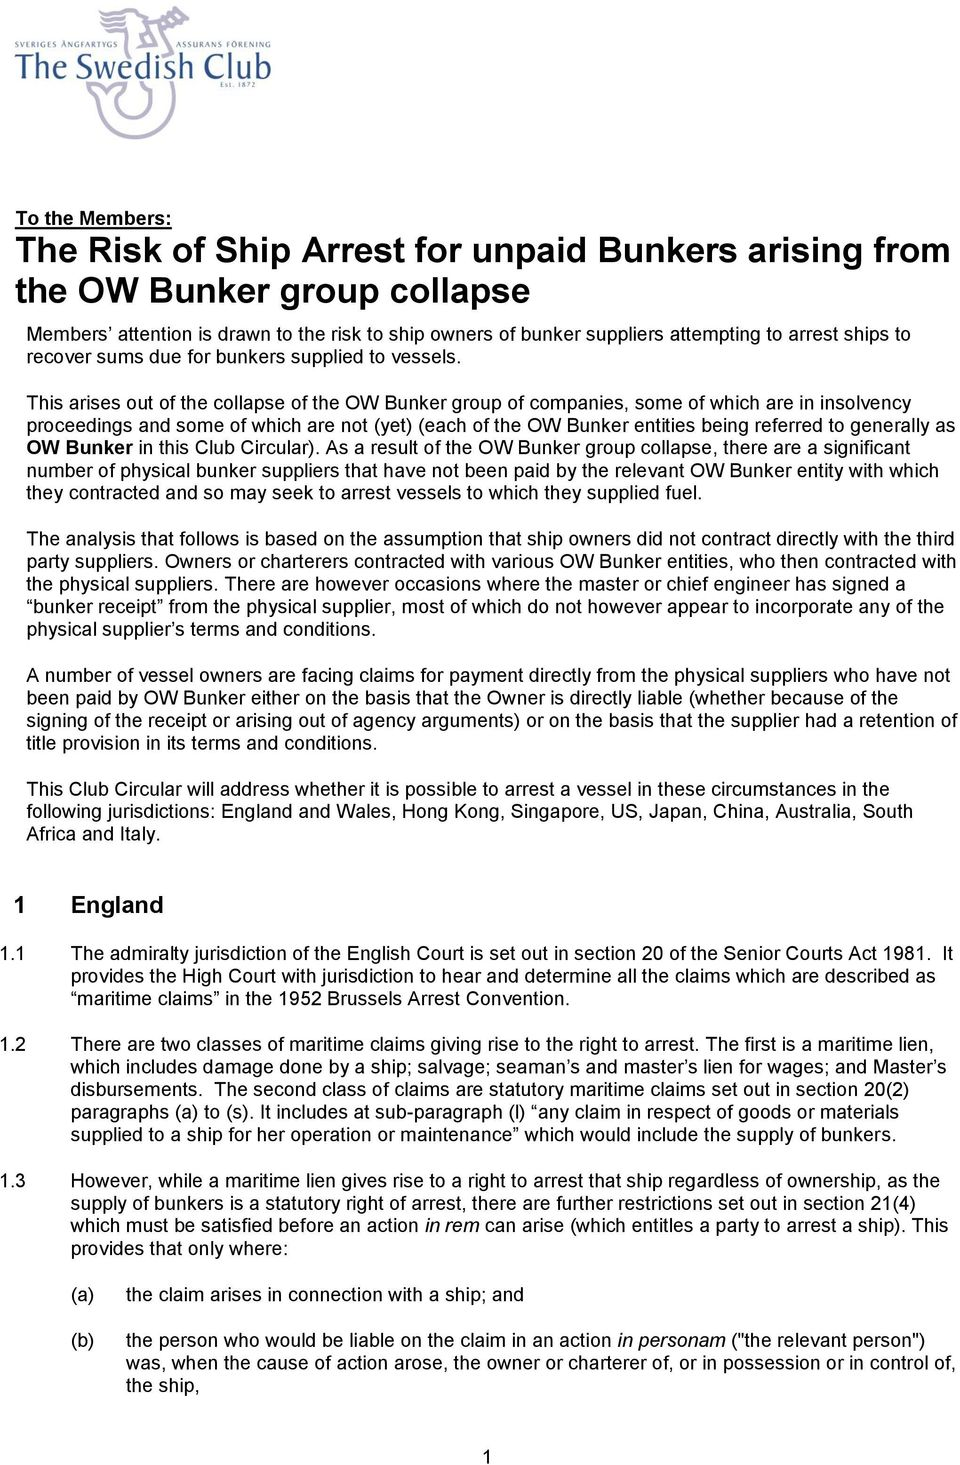 This arises out of the collapse of the OW Bunker group of companies, some of which are in insolvency proceedings and some of which are not (yet) (each of the OW Bunker entities being referred to